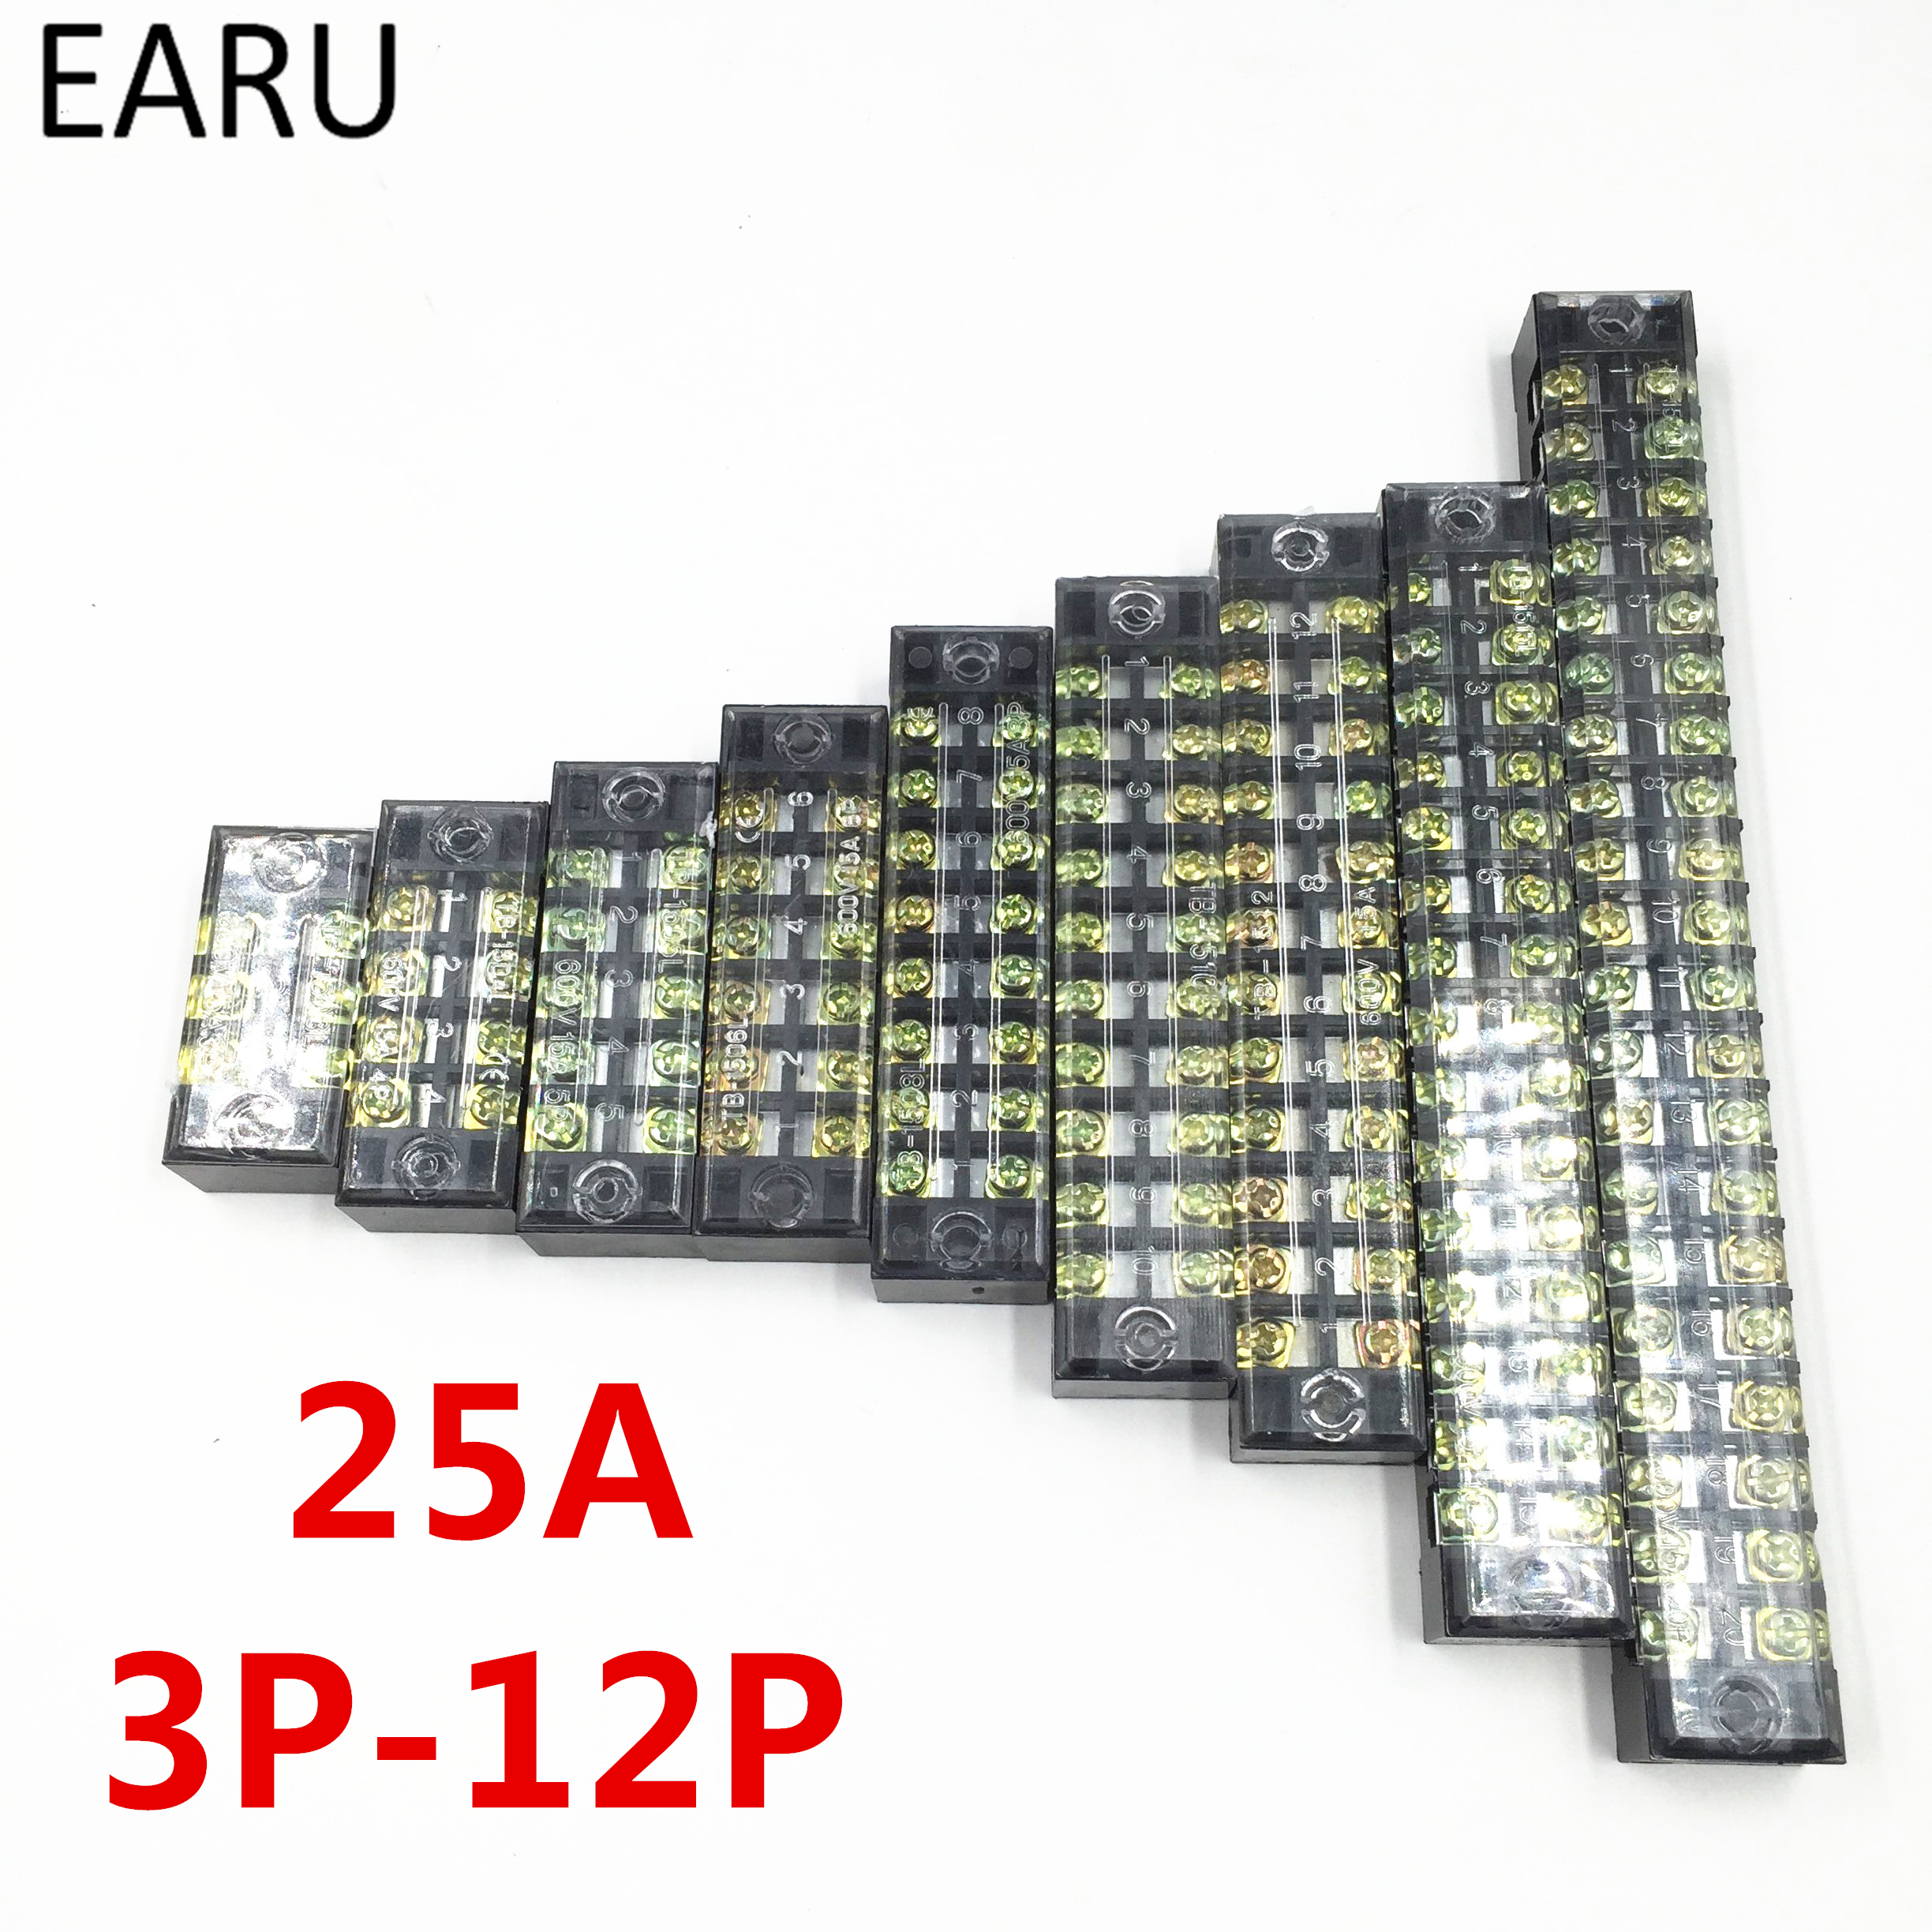 1pc 25A 600V Dual Row Barrier Screw Terminal Block Wire Connector TB Series 3 4 5 6 8 10 12 Positions Ways Factory Wholesale цены